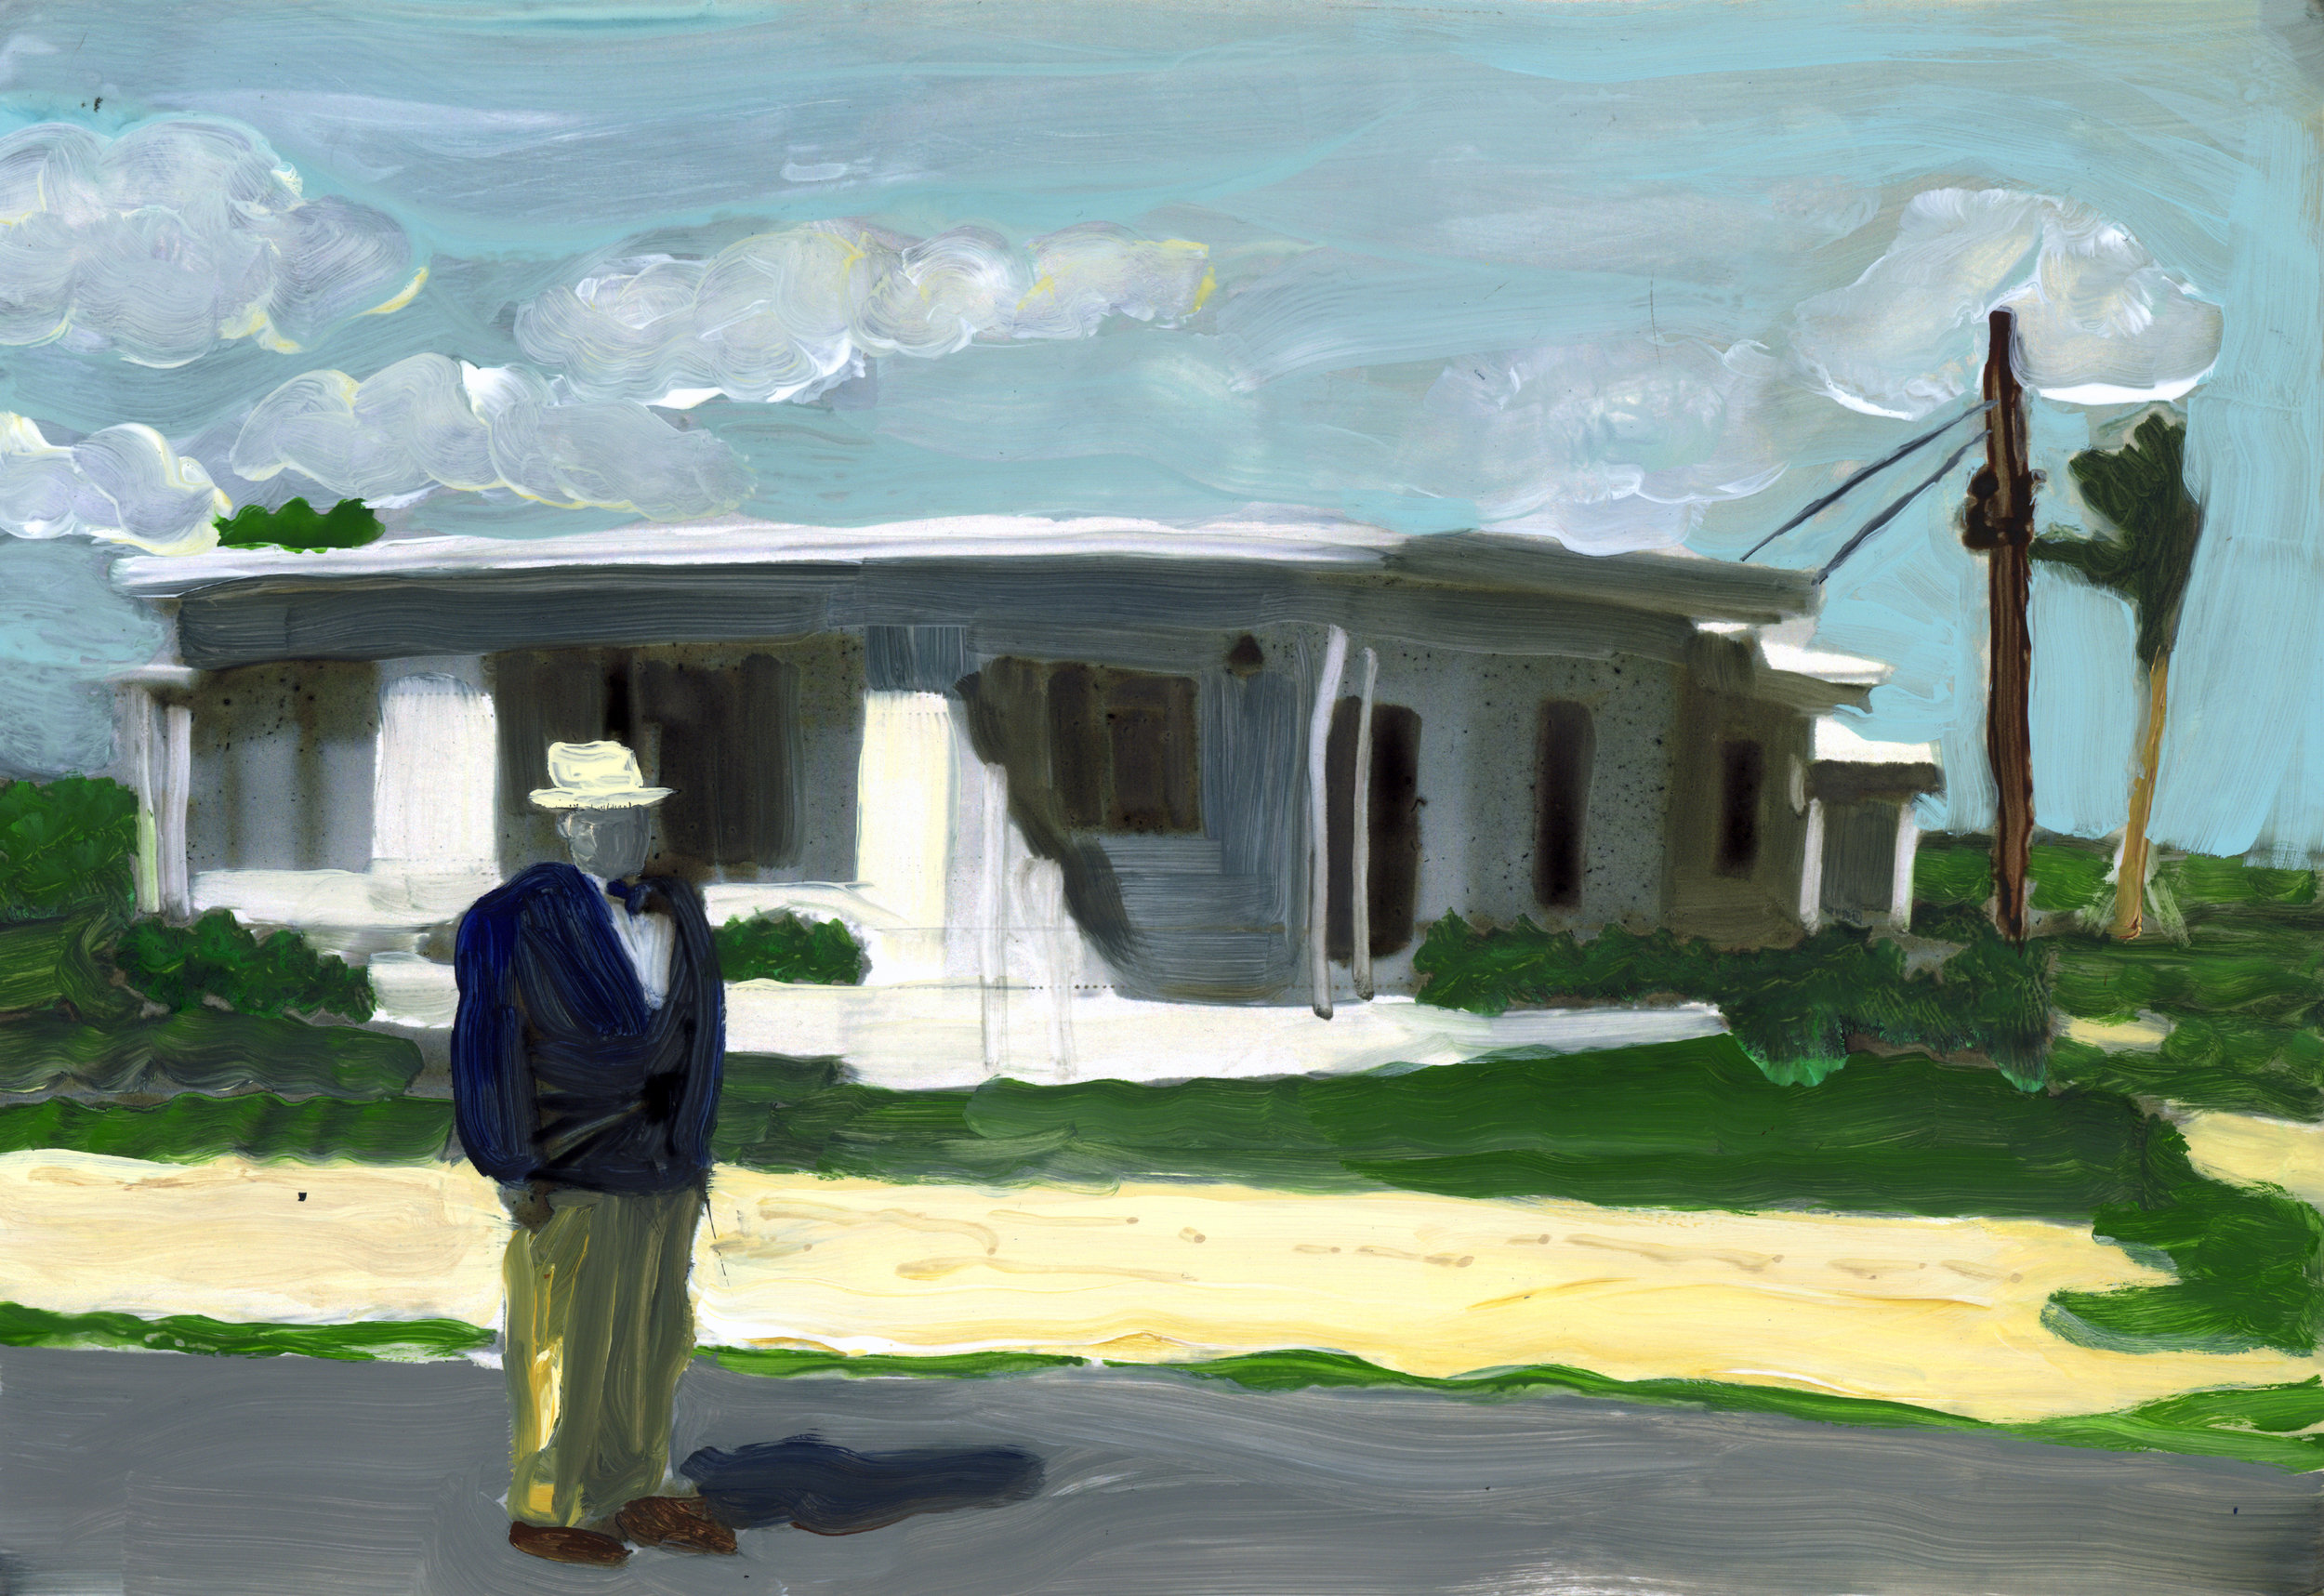 Christy Powers   grandpa in front of his new Miami house   2017  Ink, gouache, watercolor, and liquid acrylic on Yupo  Signed and dated by the artist,  verso   Image/sheet: 11 x 14 inches  Framed: 12 x 15 1/4 inches